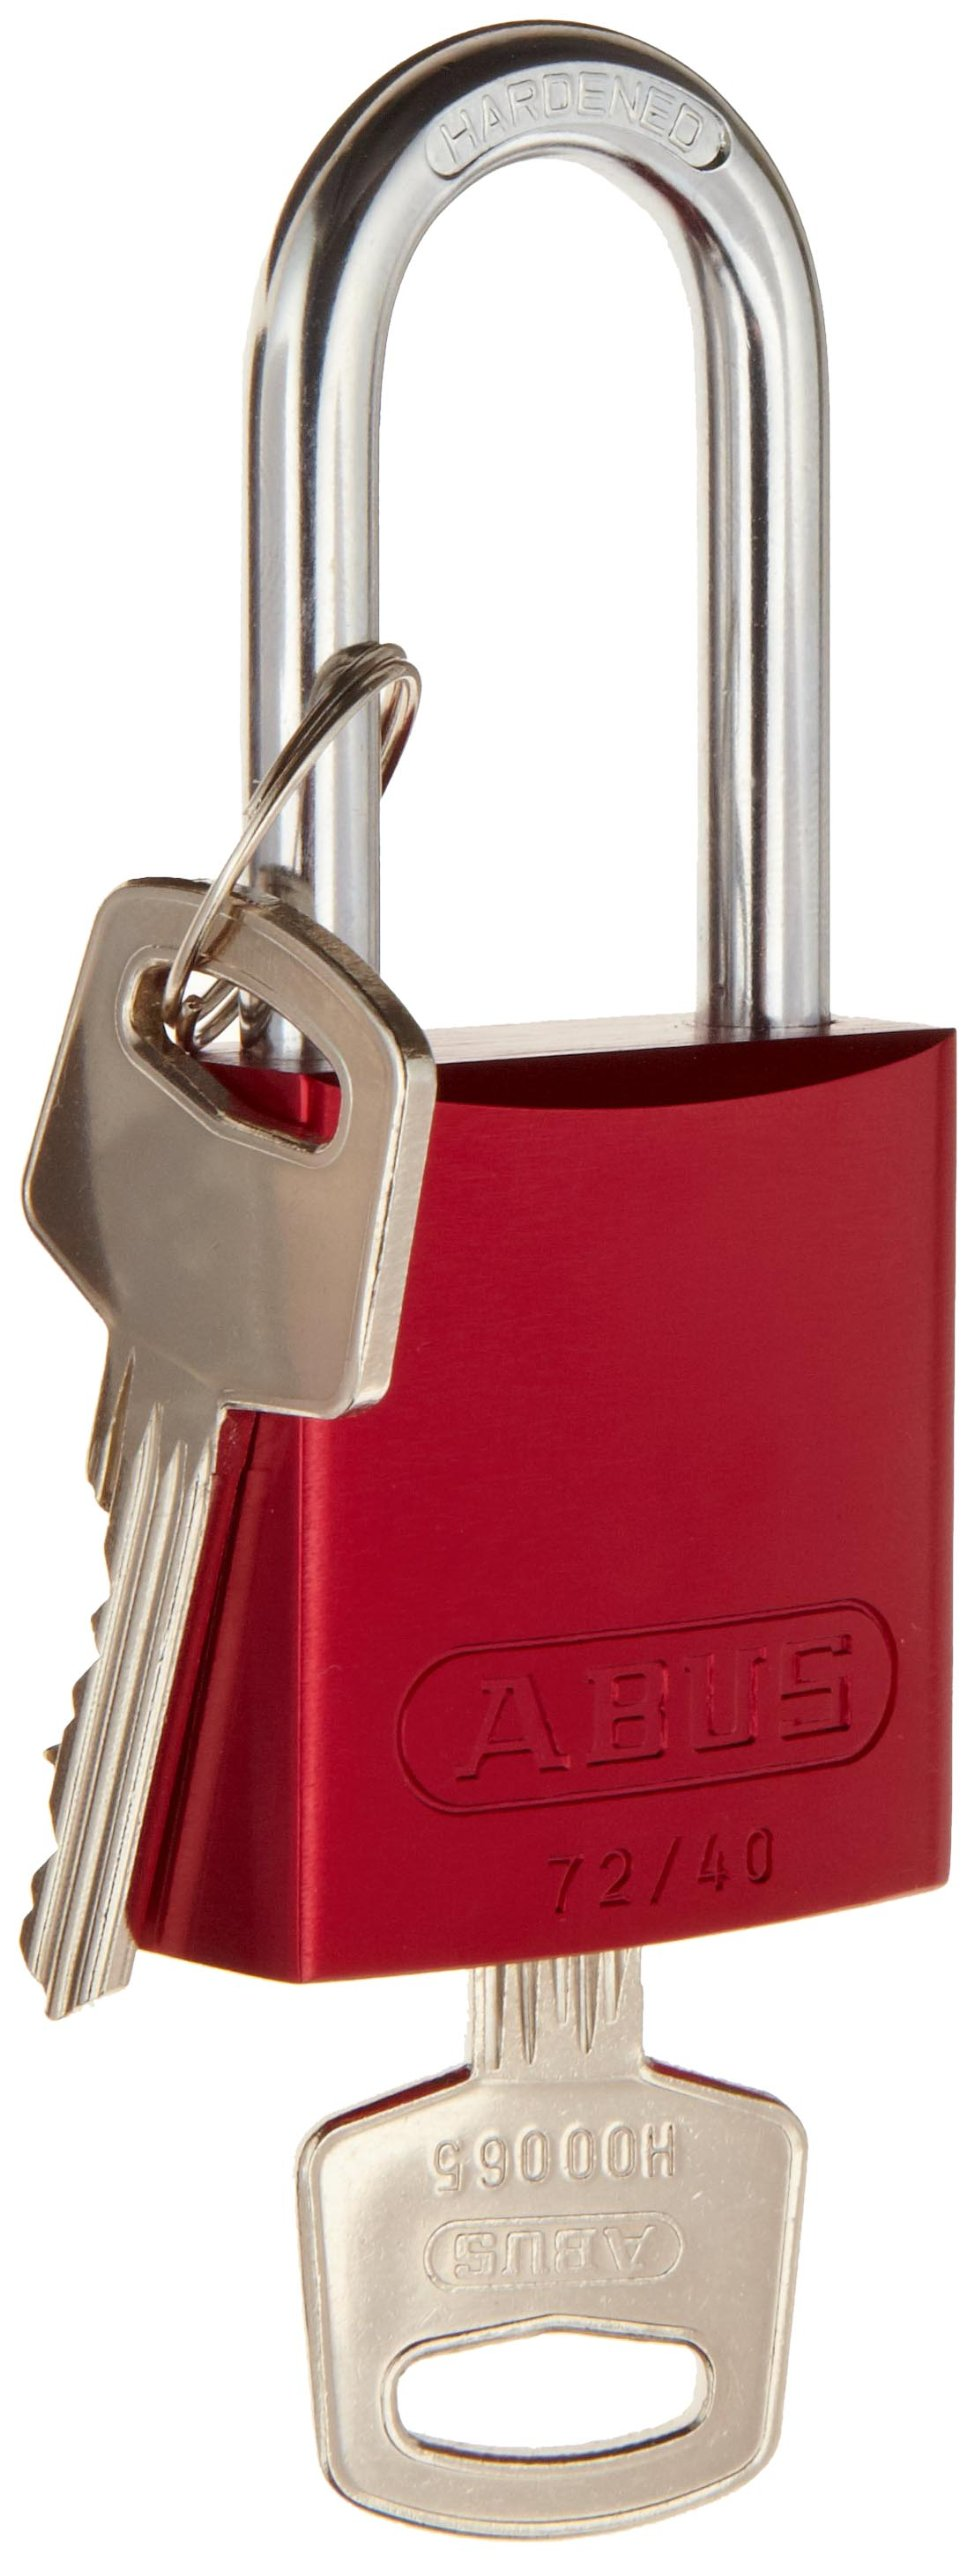 Brady  Aluminum Lockout/Tagout Padlock, Keyed Alike, 1-3/5'' Body Length, 1-1/2'' Shackle Clearance, Red (Pack of 6)